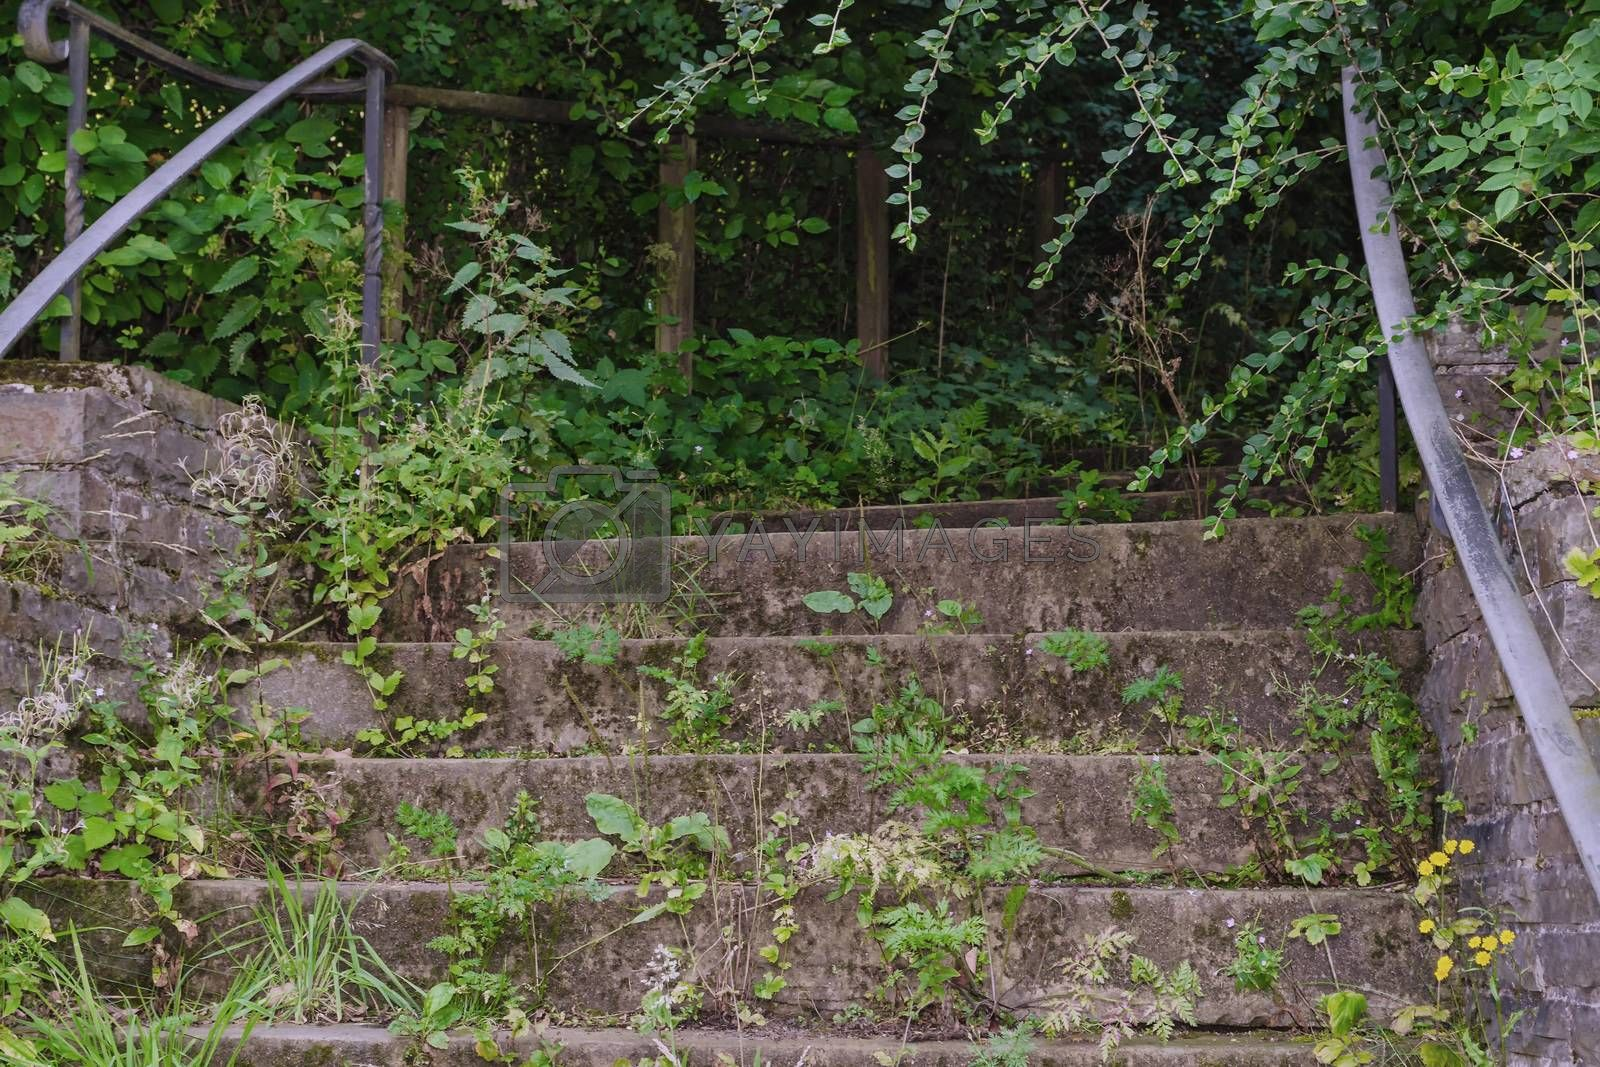 An old stone stair with railing surrounded with vegetation